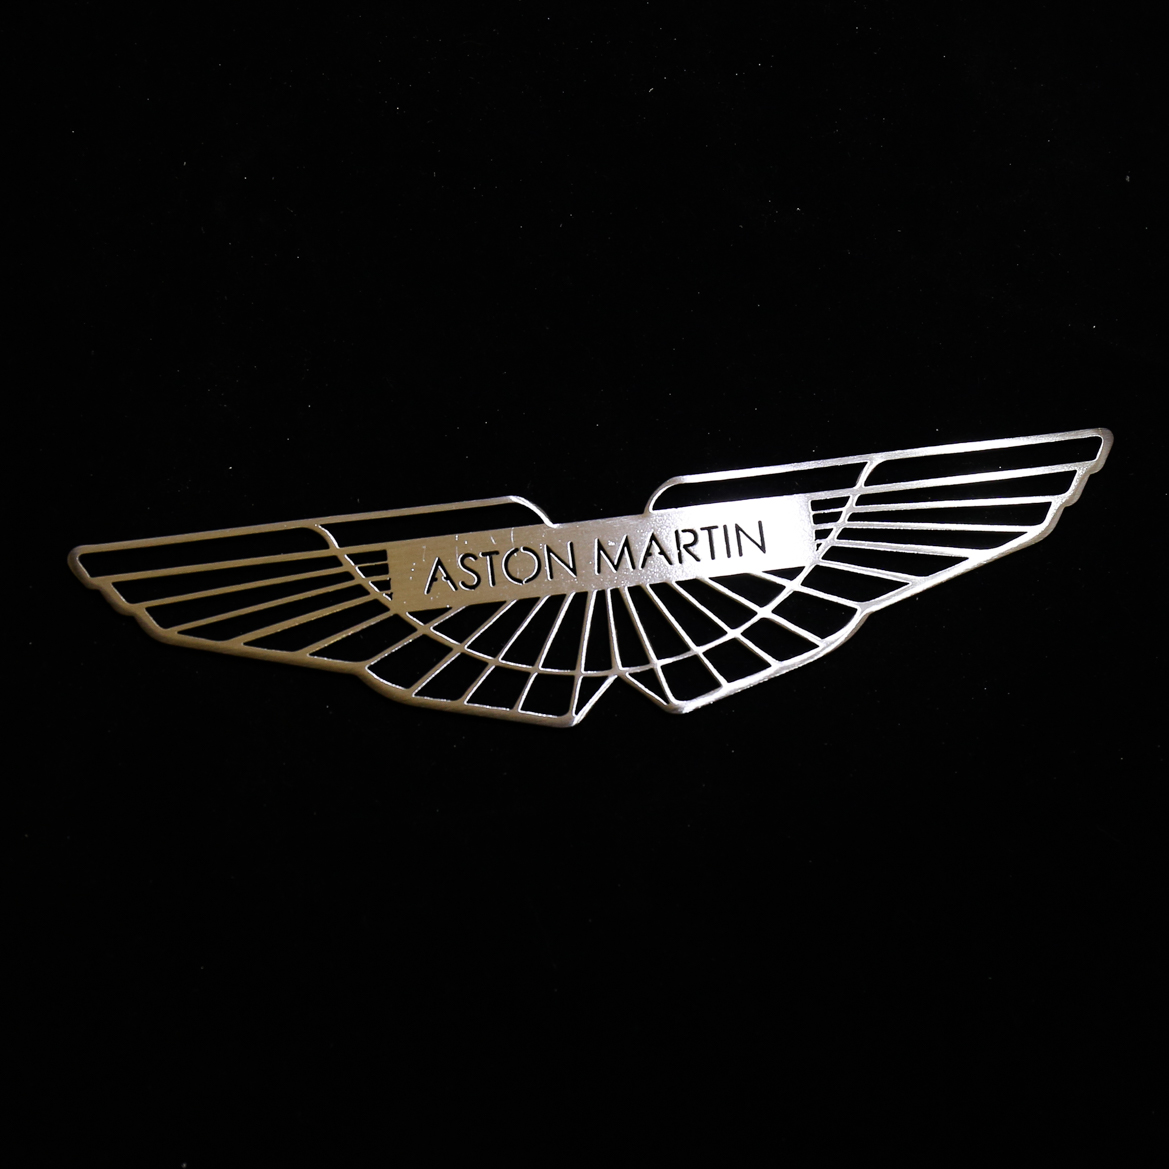 Stainless Steel Aston Martin Badge